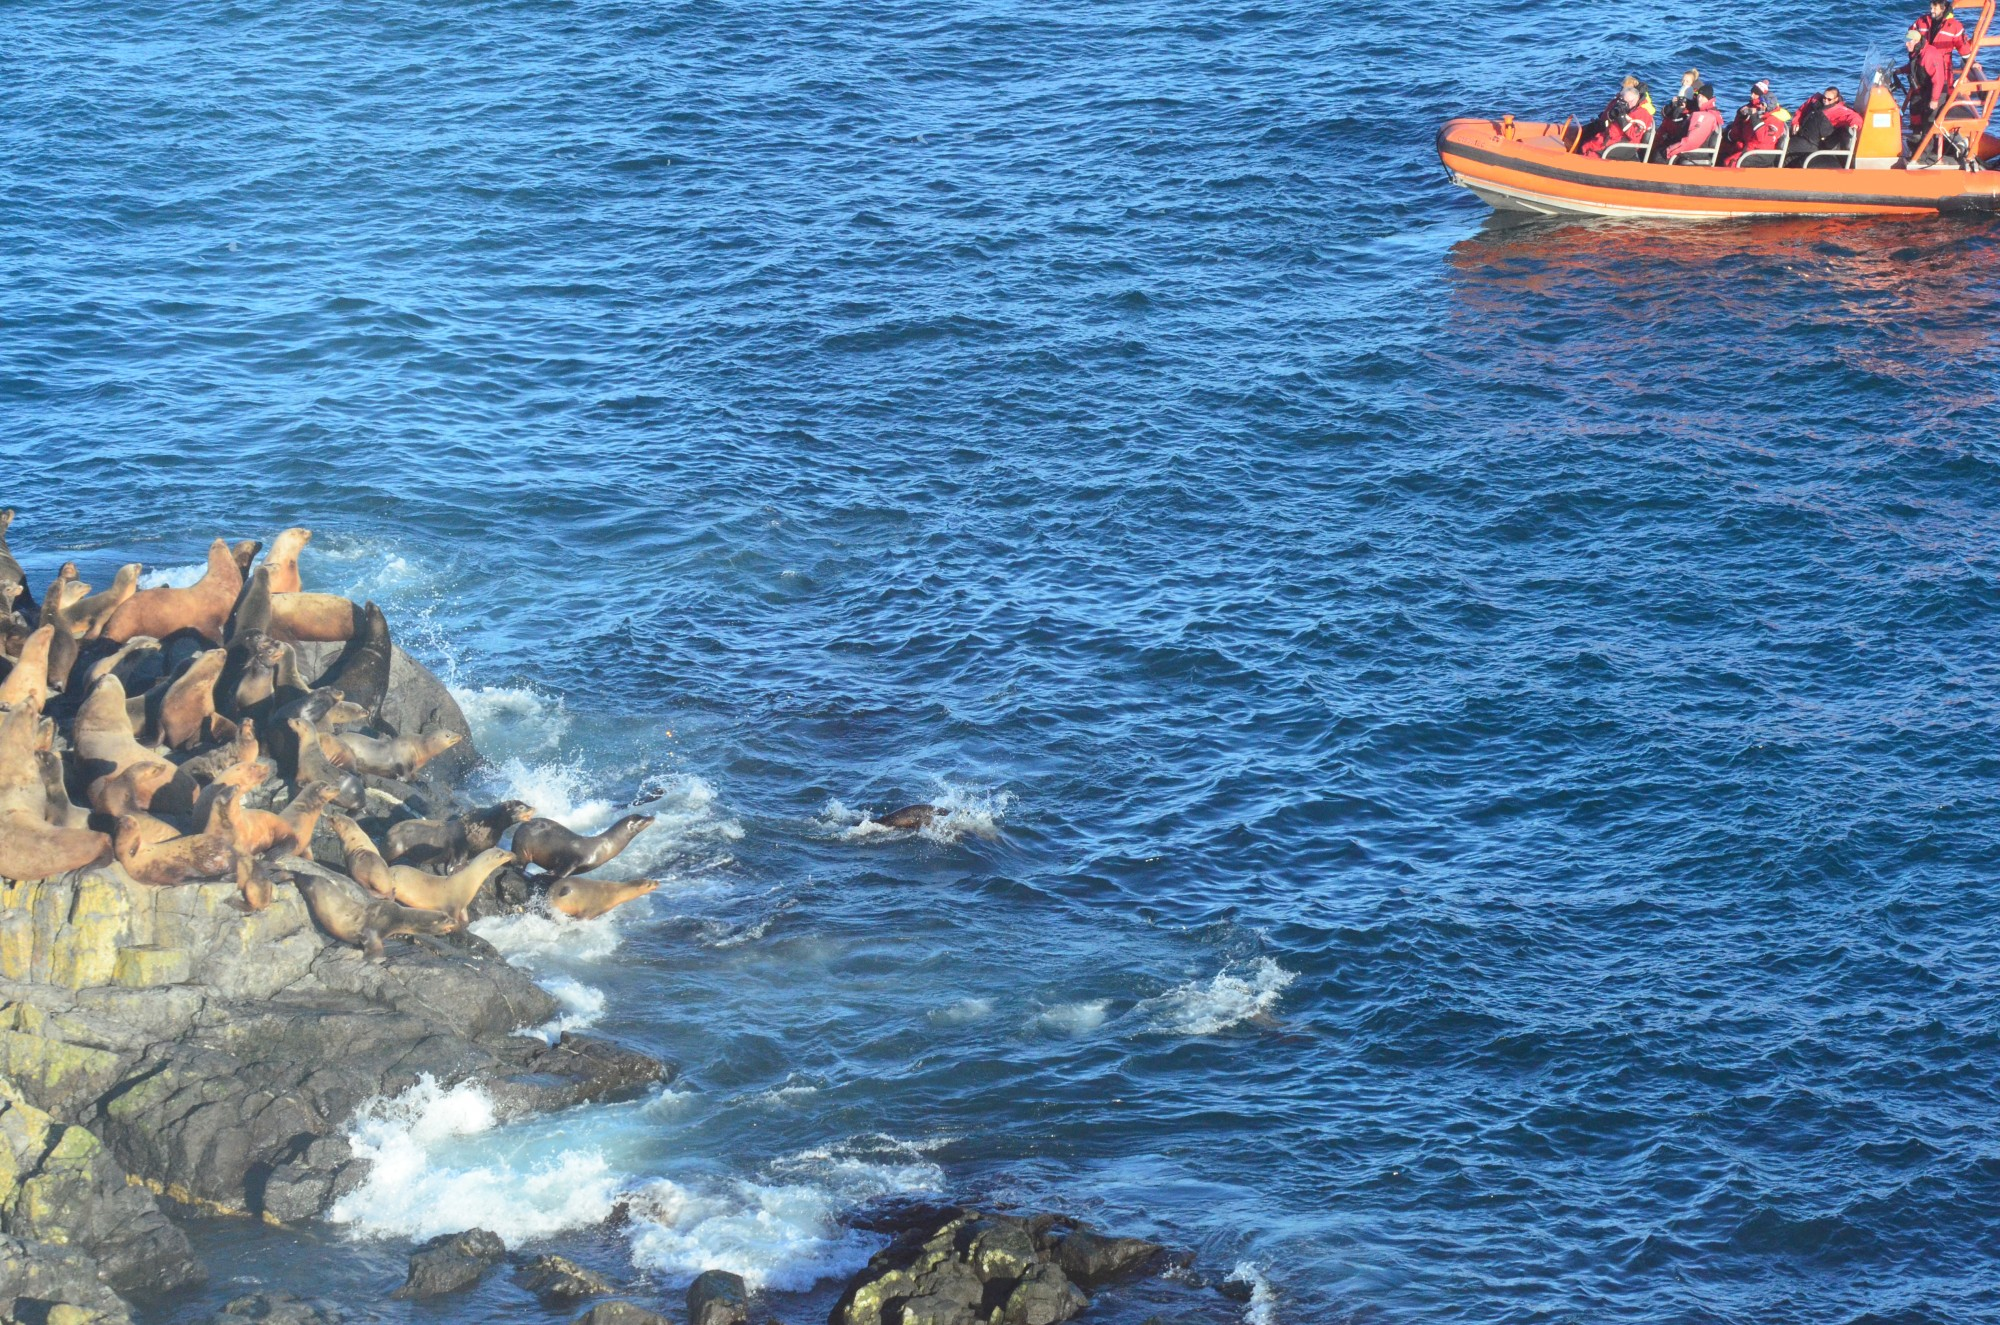 Whale watching boat comes too close and causes Sea lions to stamped